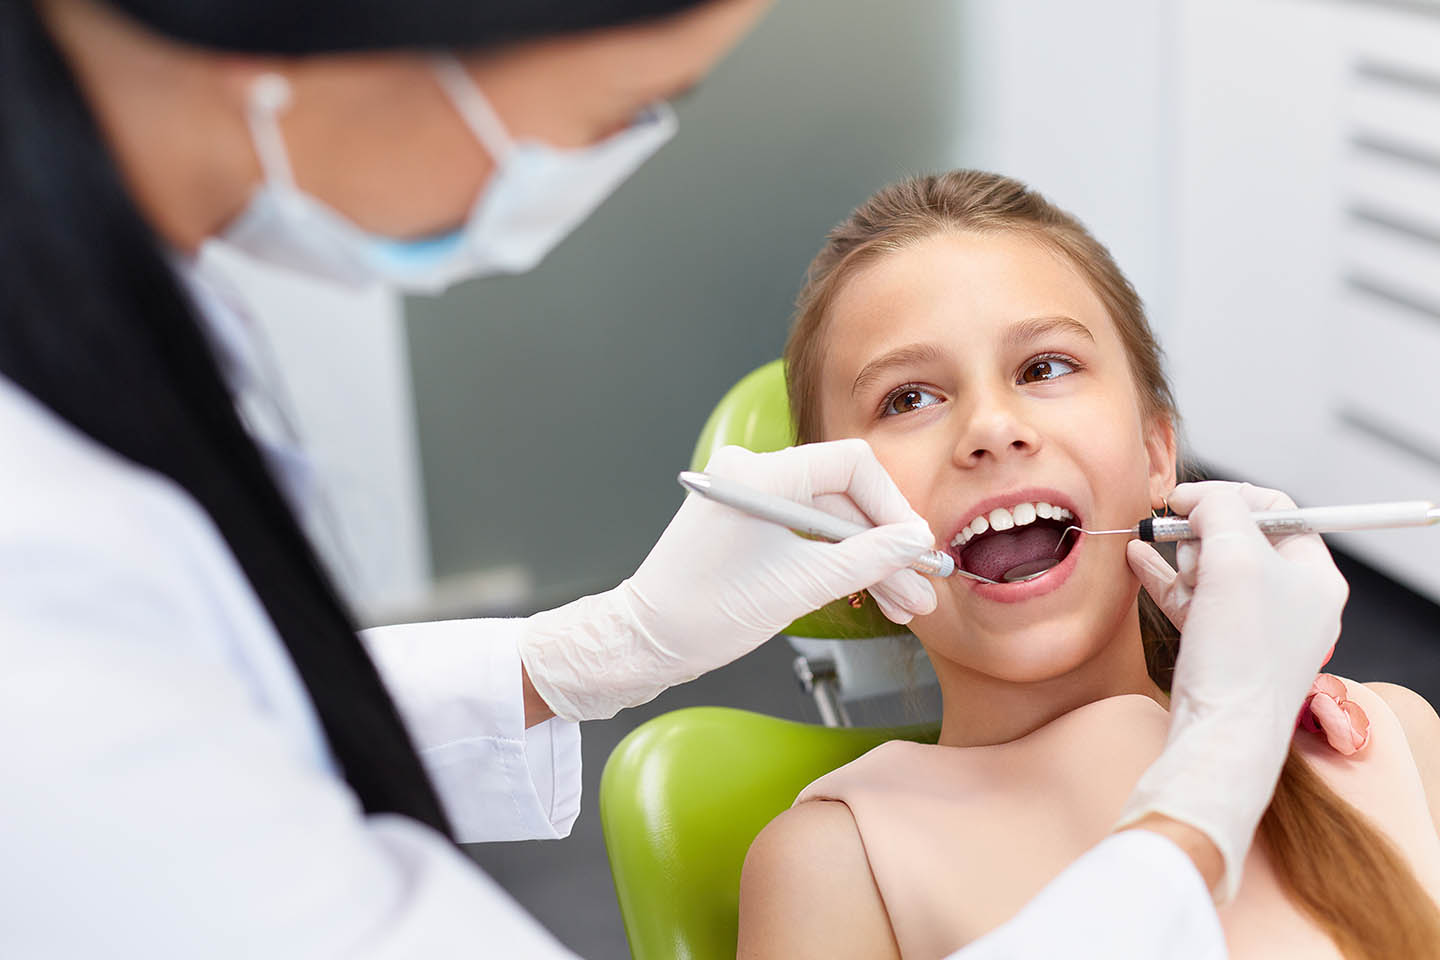 A child getting dental care